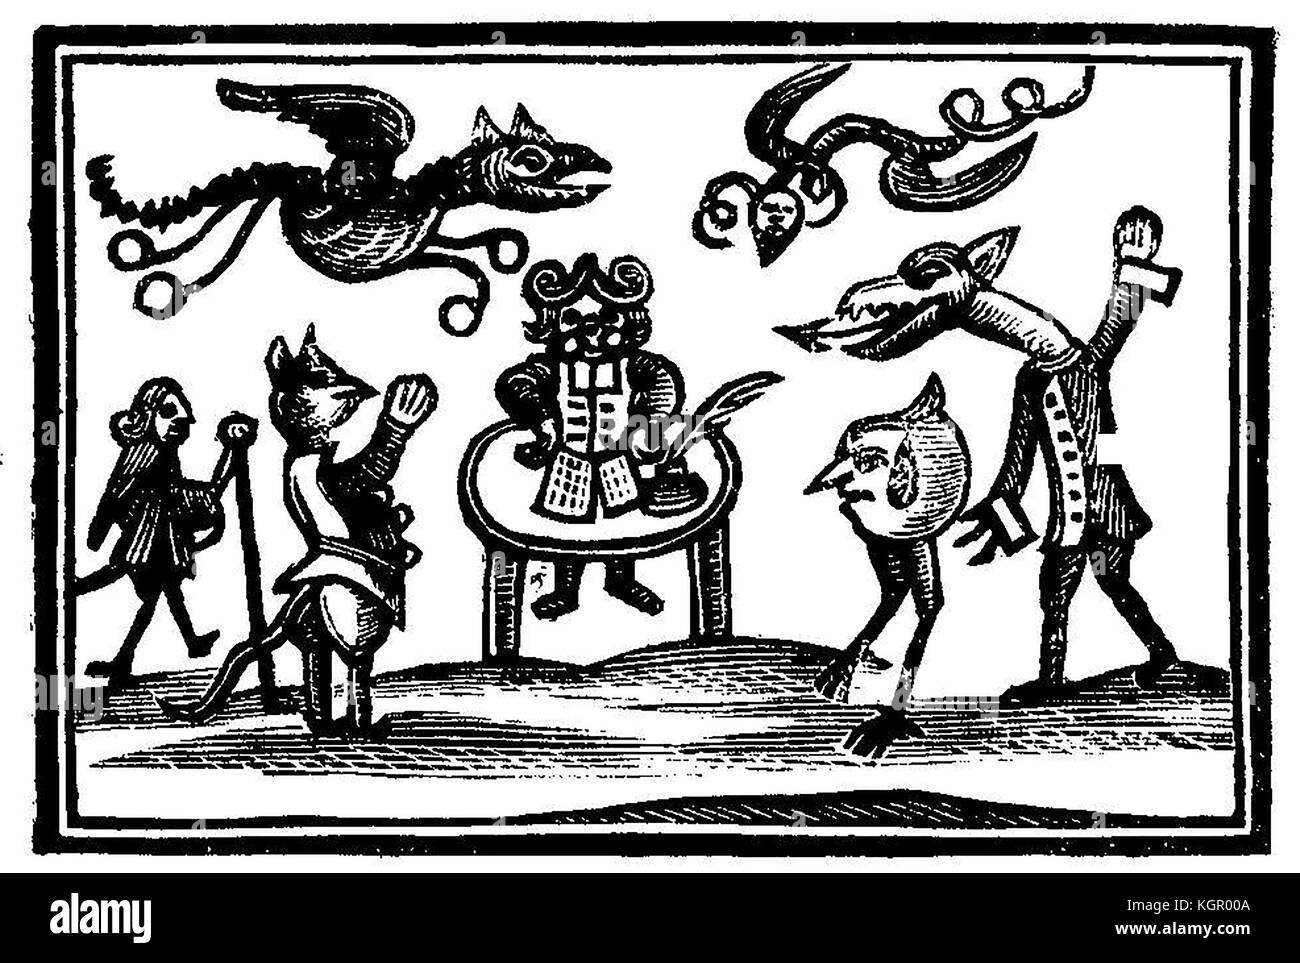 WITCHCRAFT - An old woodcut showing a witch's familiars, demons and goblins - Stock Image